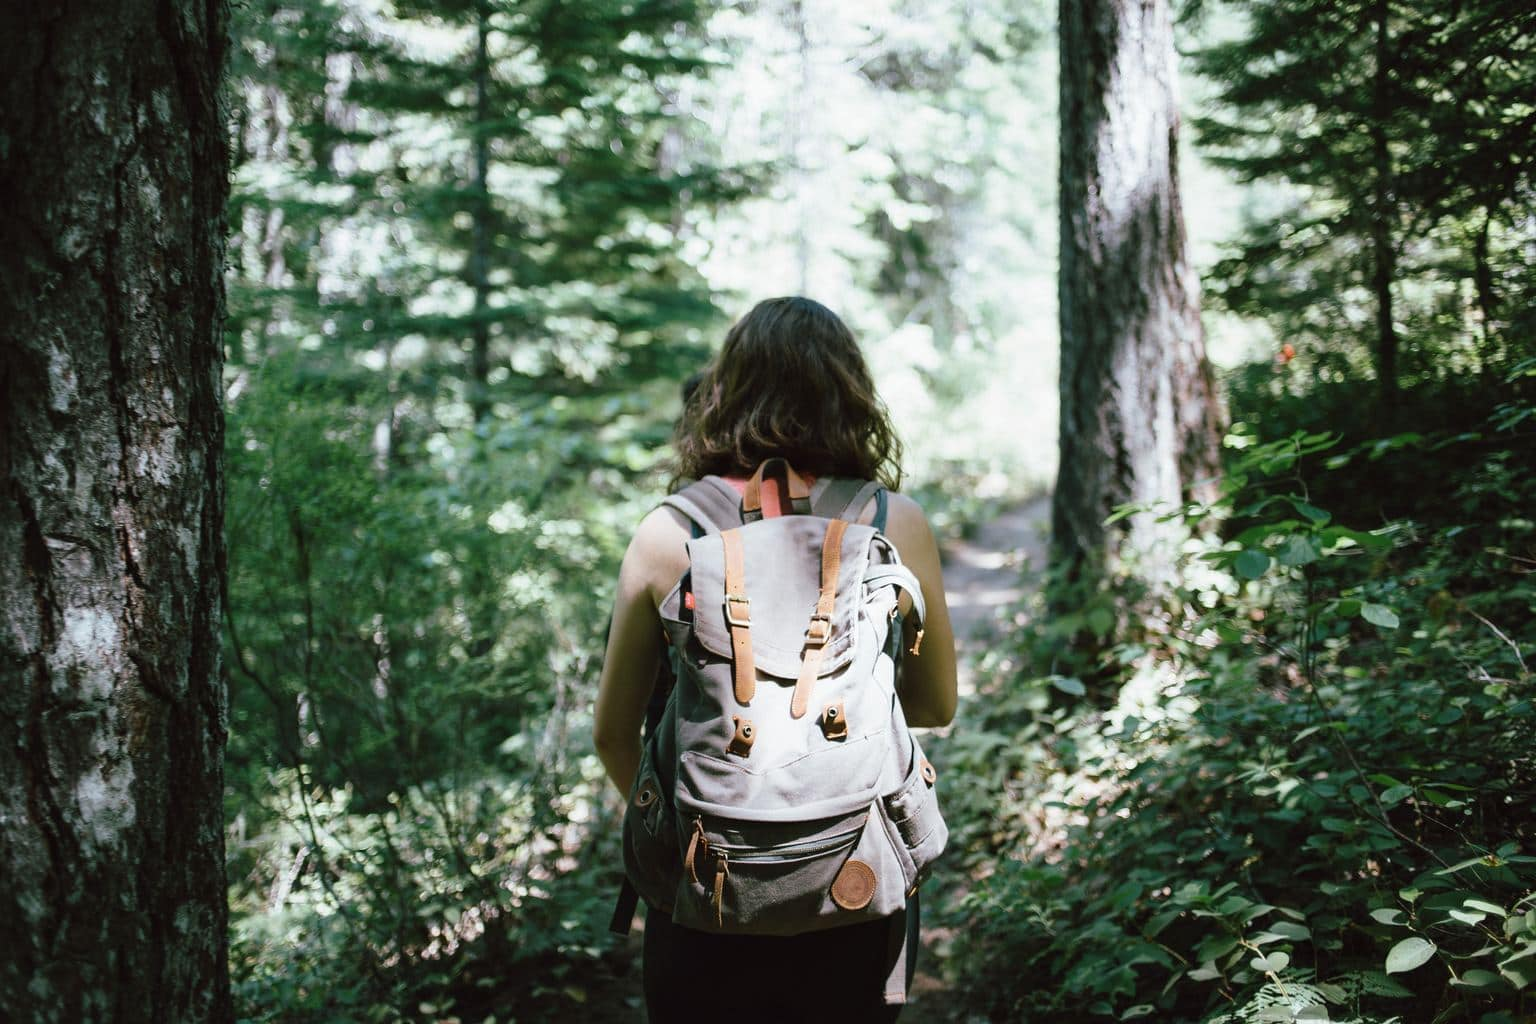 Lady Hiking Through the Forest